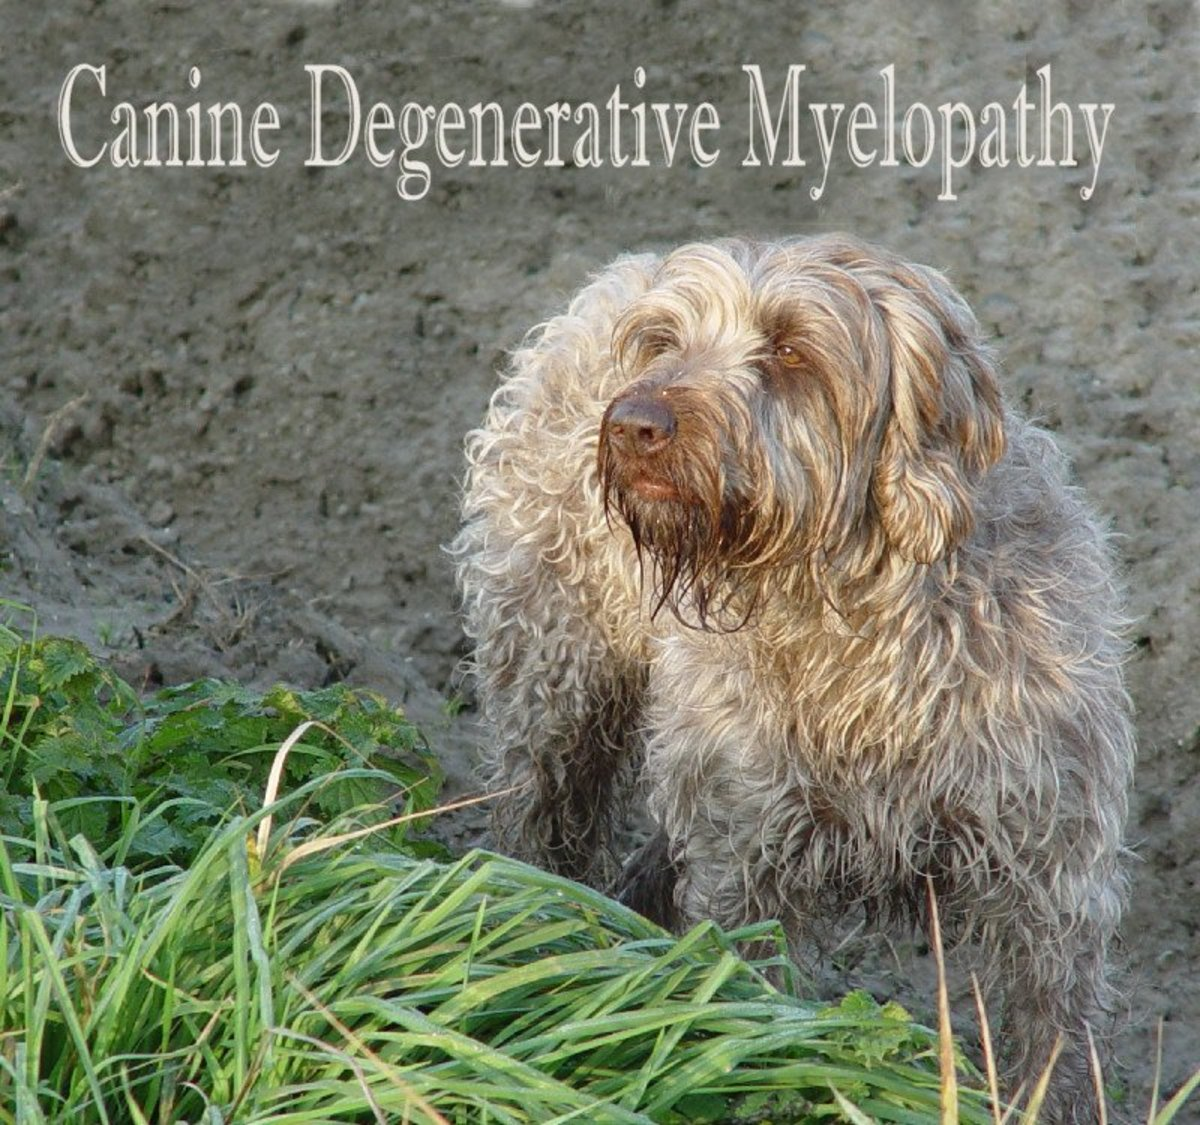 Canine Degenerative Myelopathy and My Experience